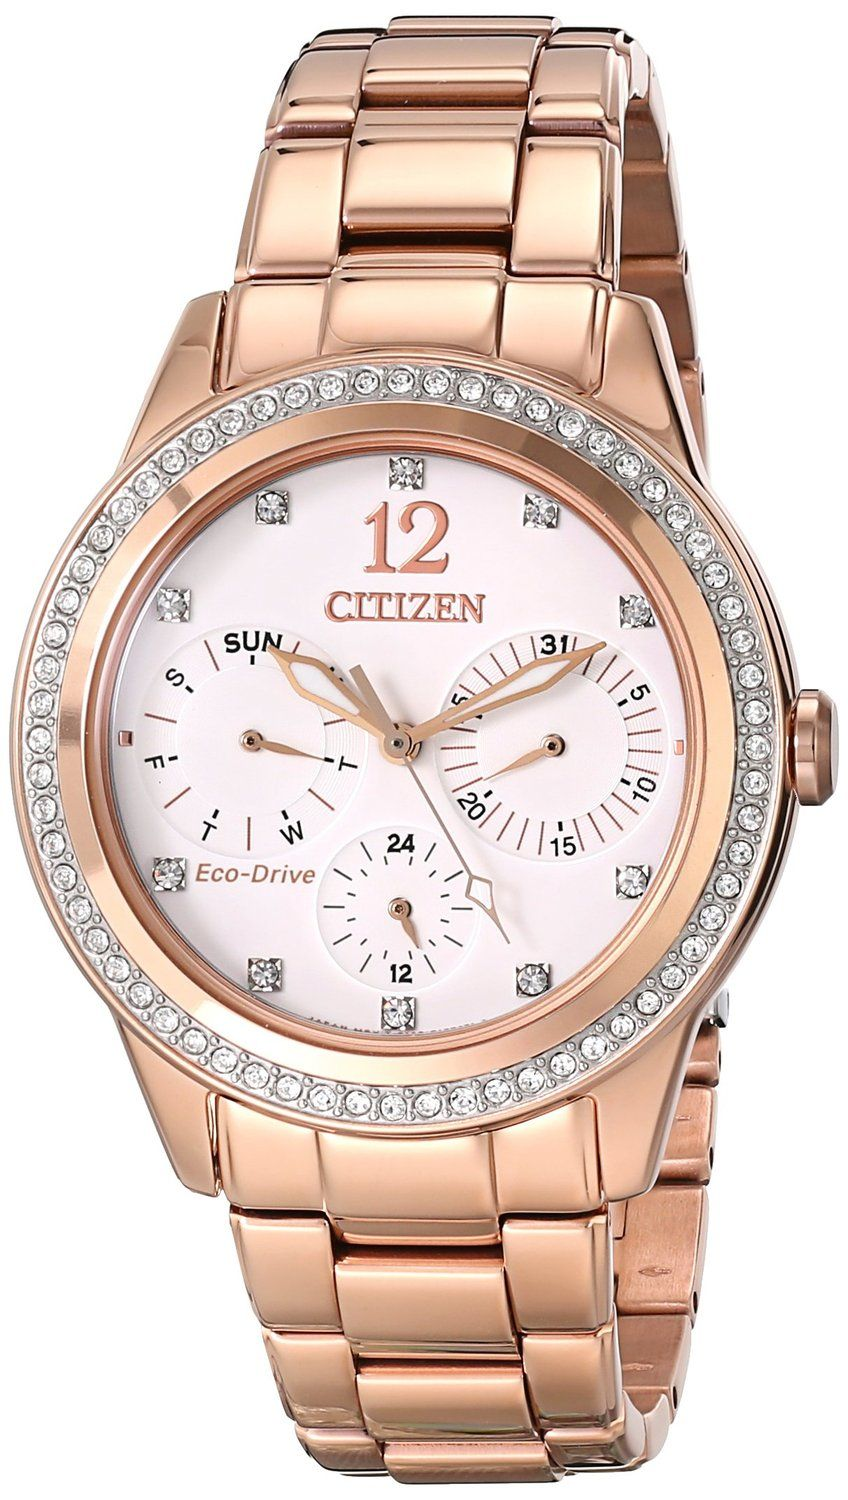 Women Watches Best Gold Watches For Women Citizen Eco Drive Dress Stainless Steel Rose Gold Wome Rose Gold Watches Women Crystal Watches Gold Watches Women